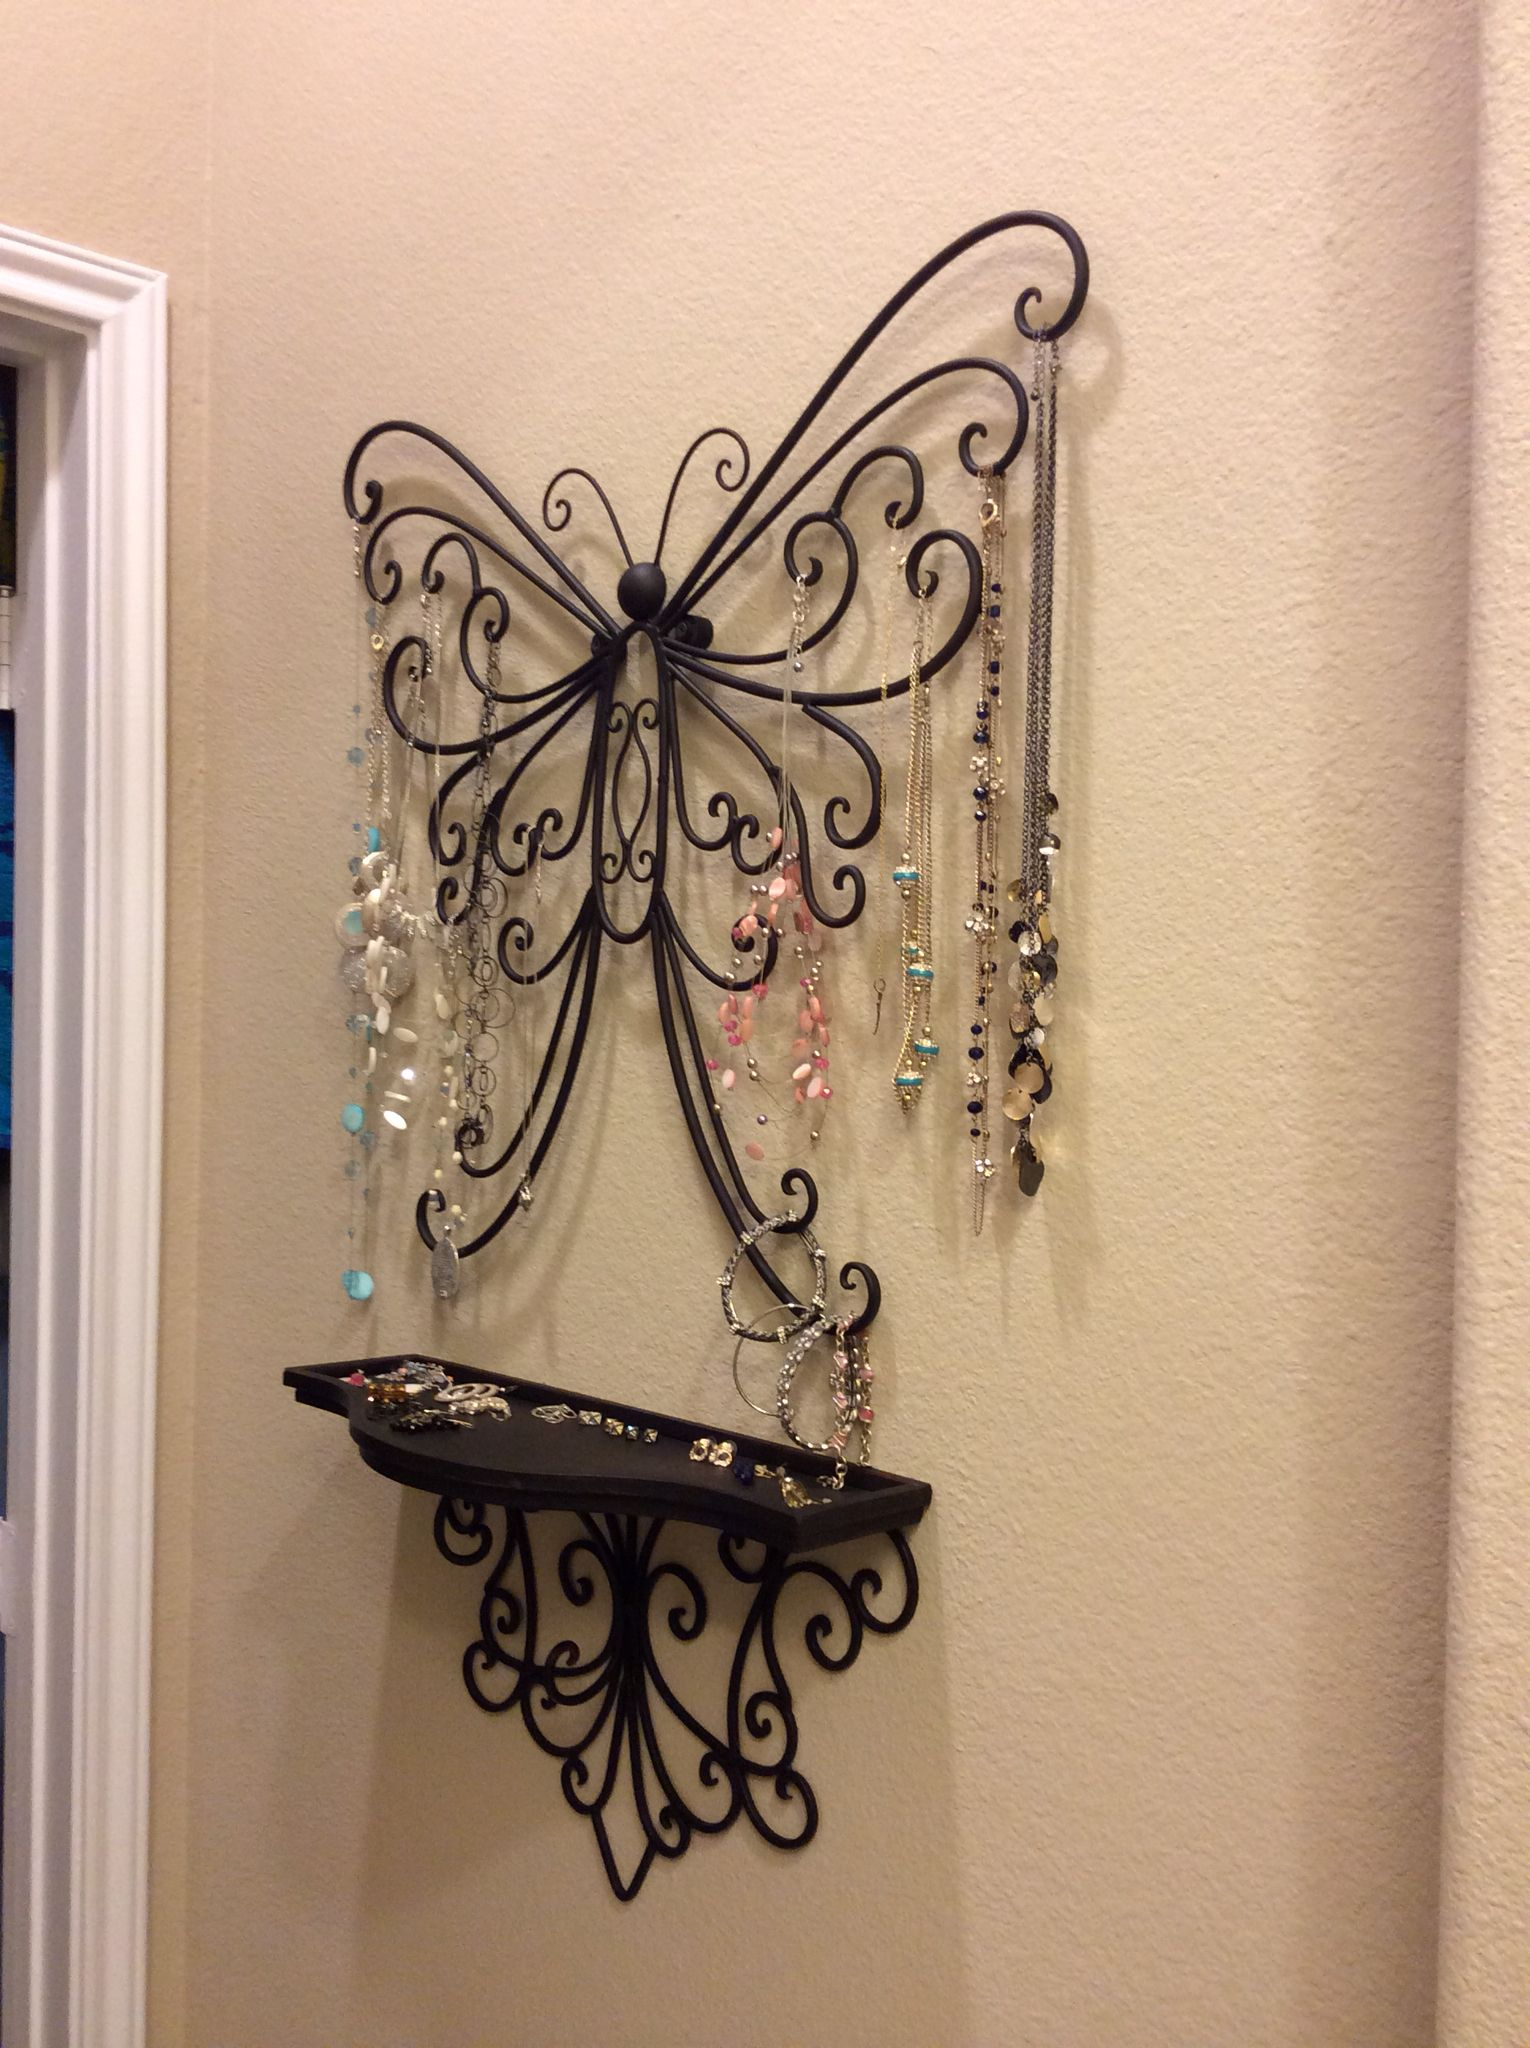 Wall art from hobby lobby and added some rubber spacers to ... on Hobby Lobby Wall Candle Sconces Wall Candle Holders id=65812